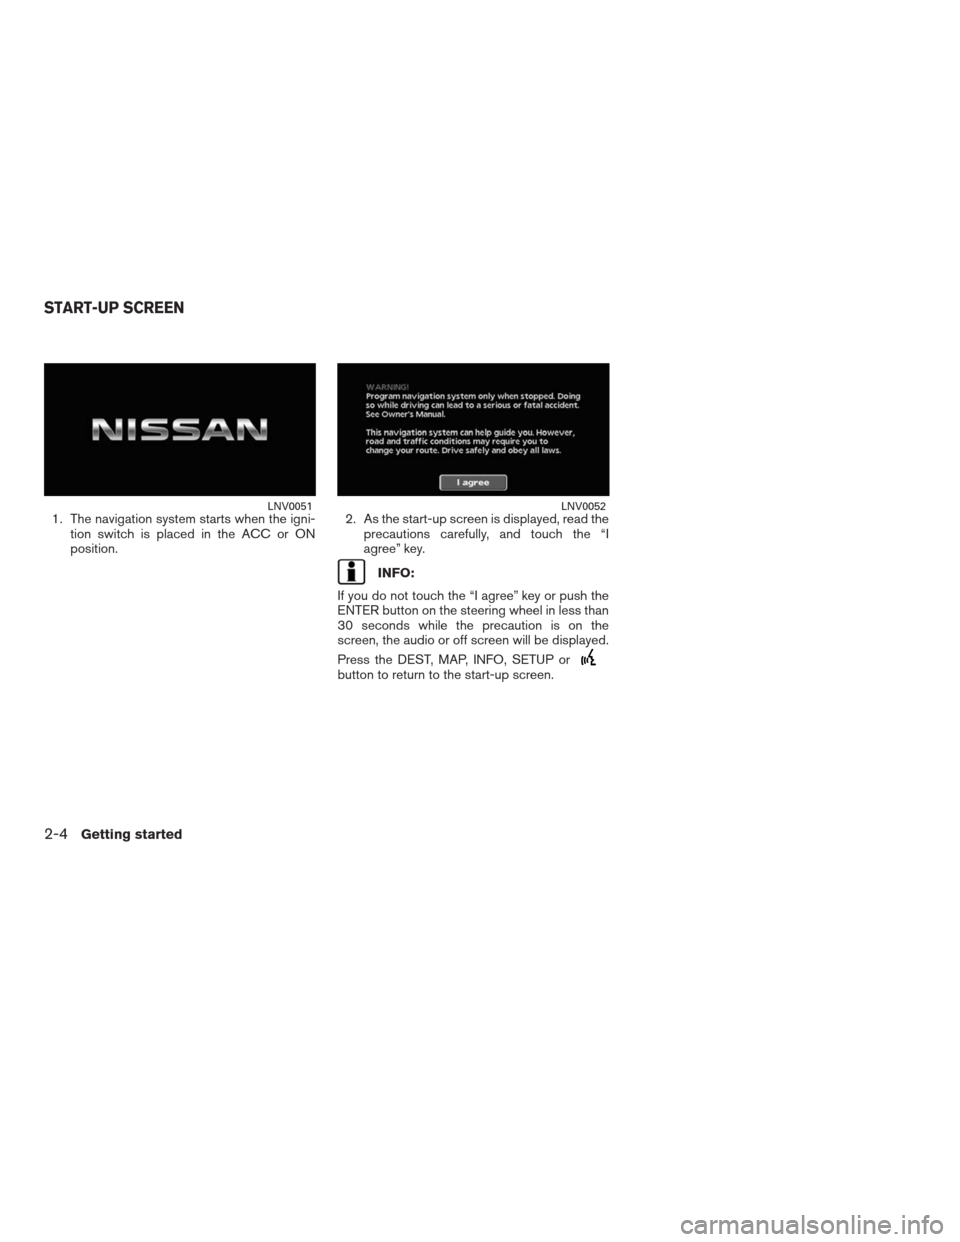 NISSAN ALTIMA COUPE 2009 D32 / 4.G Navigation Manual, Page 11